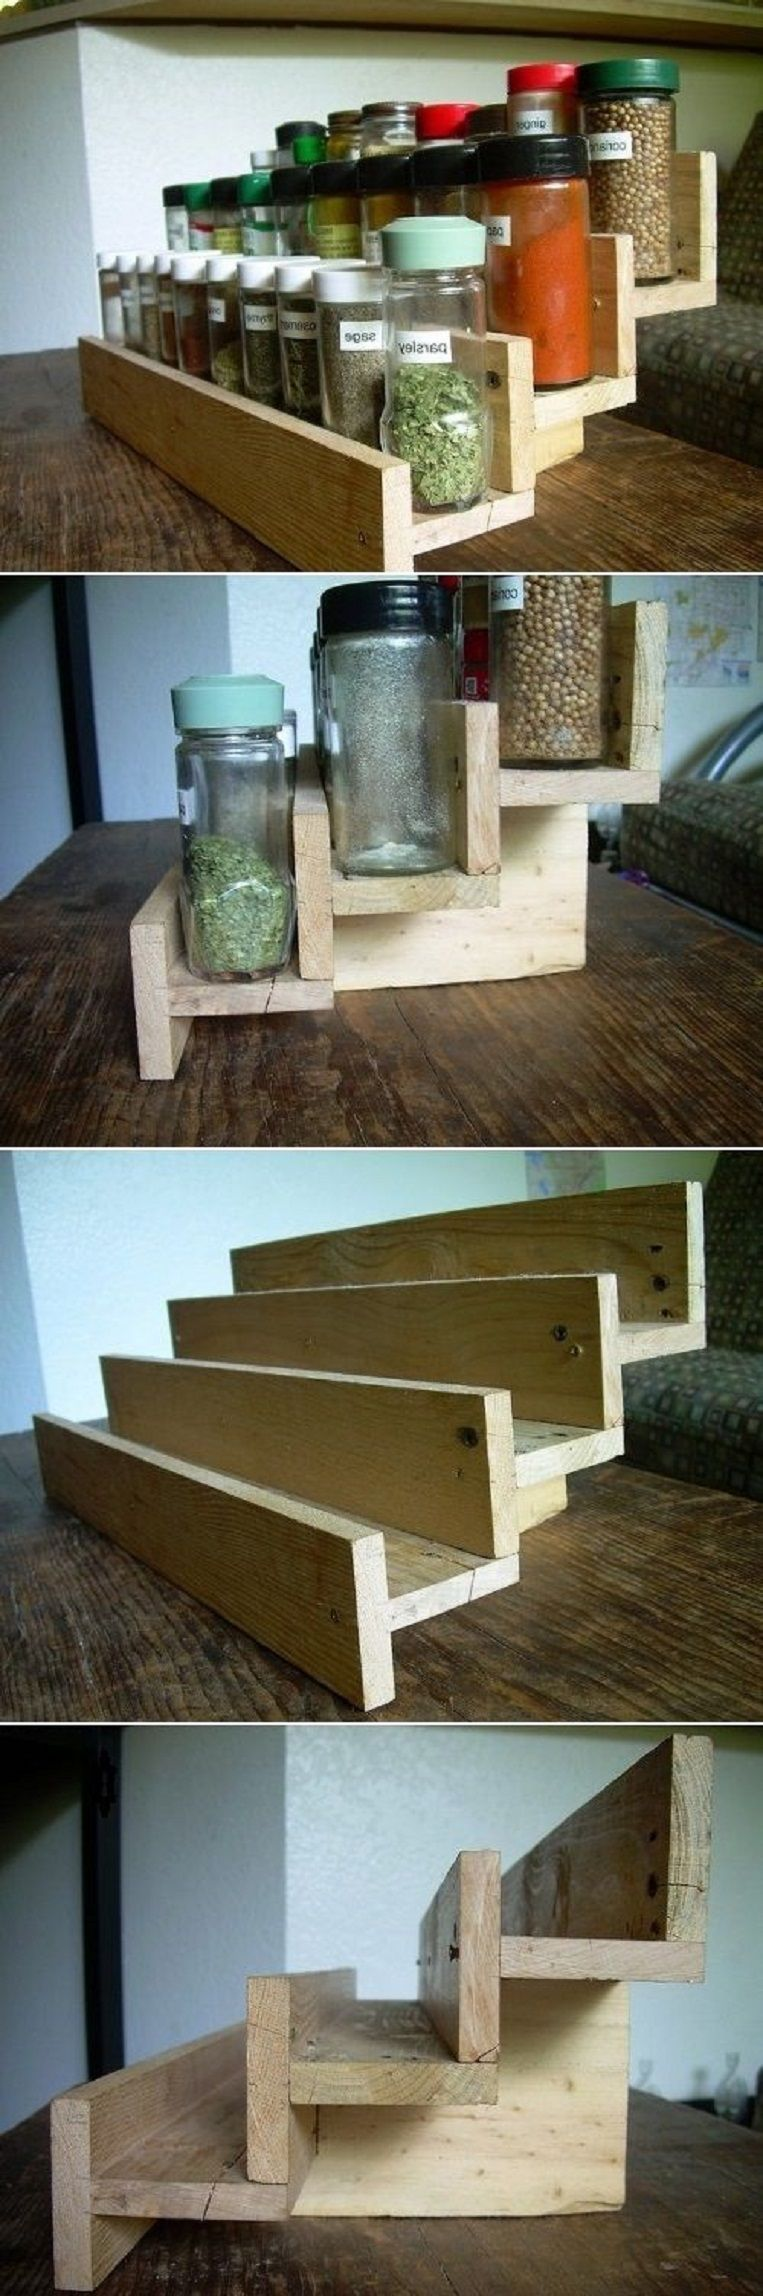 Add to the apothecary diy spice rack from a